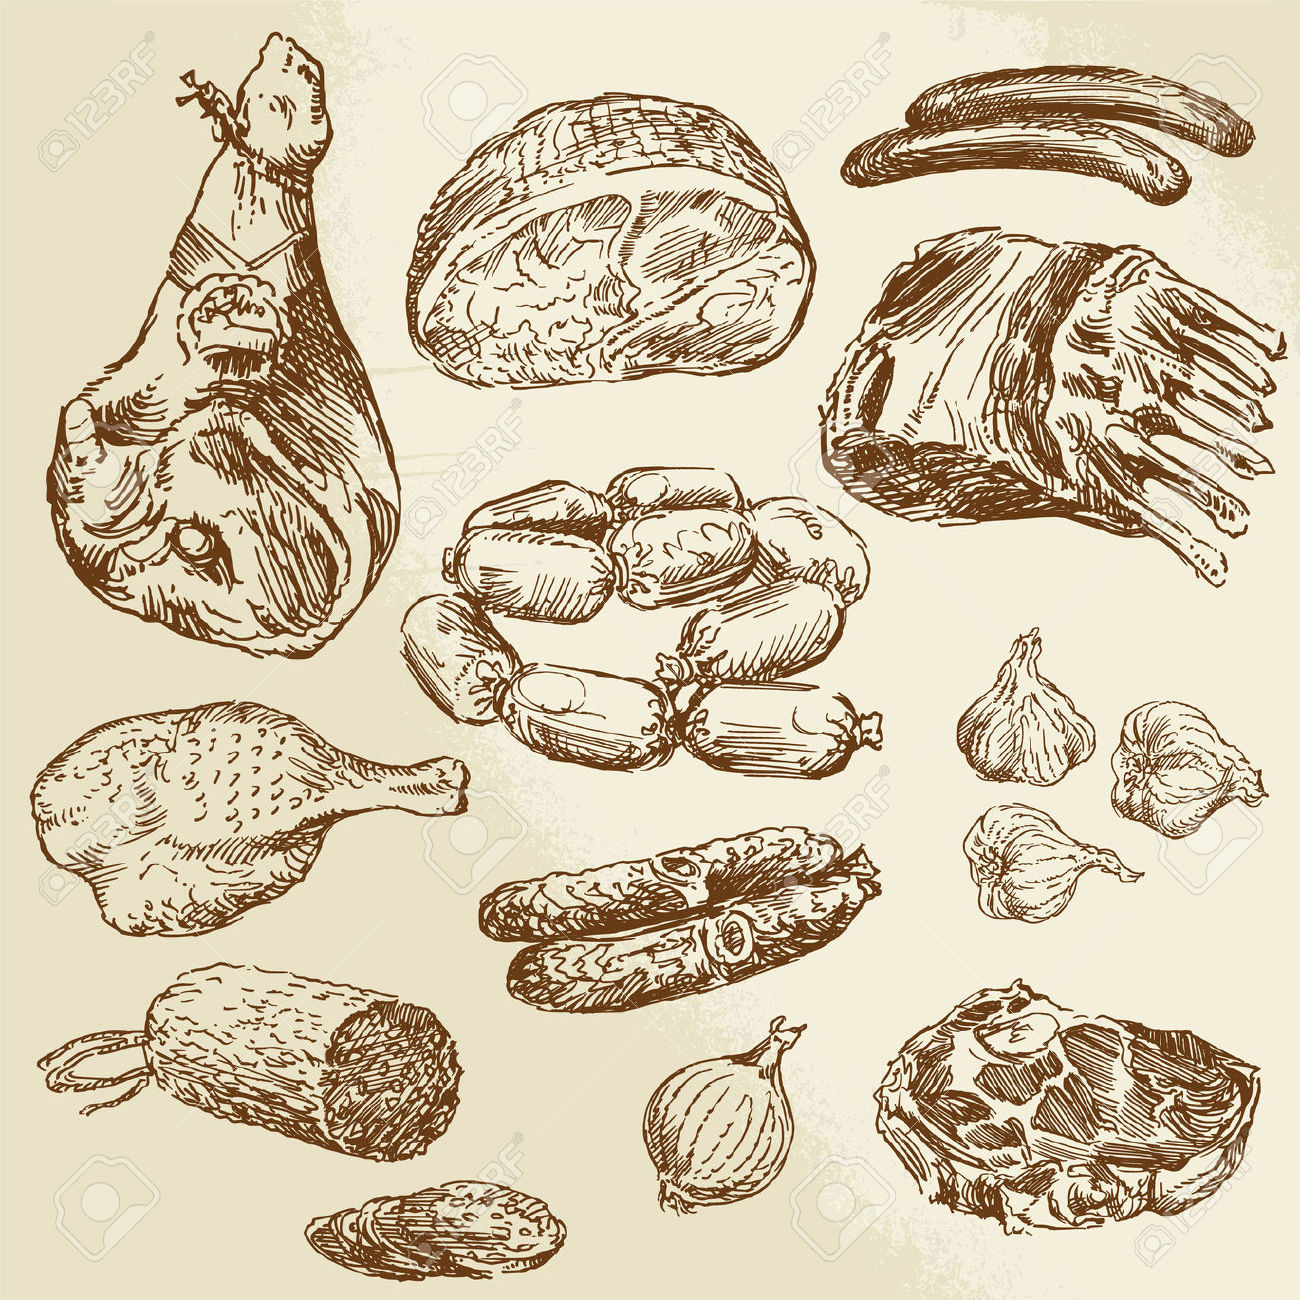 1300x1300 26590661 Meat Hand Drawn Collection Stock Vector Ham.jpg (1300